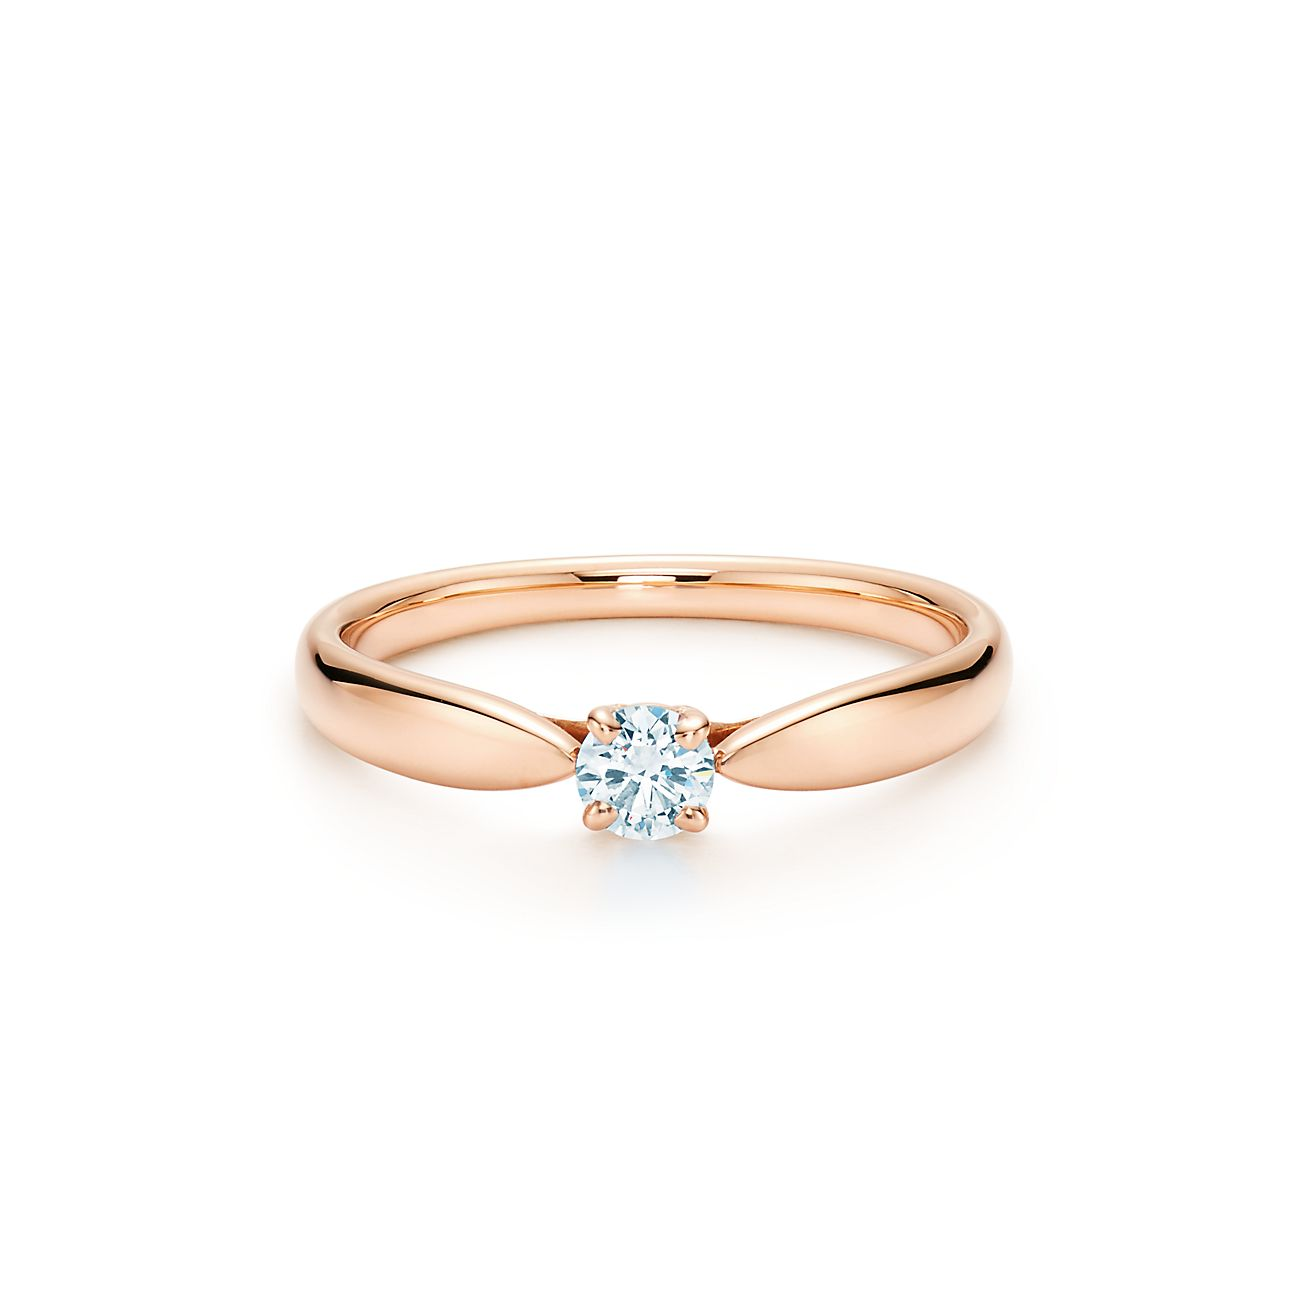 Tiffany Harmony ring in 18k rose gold with a round brilliant